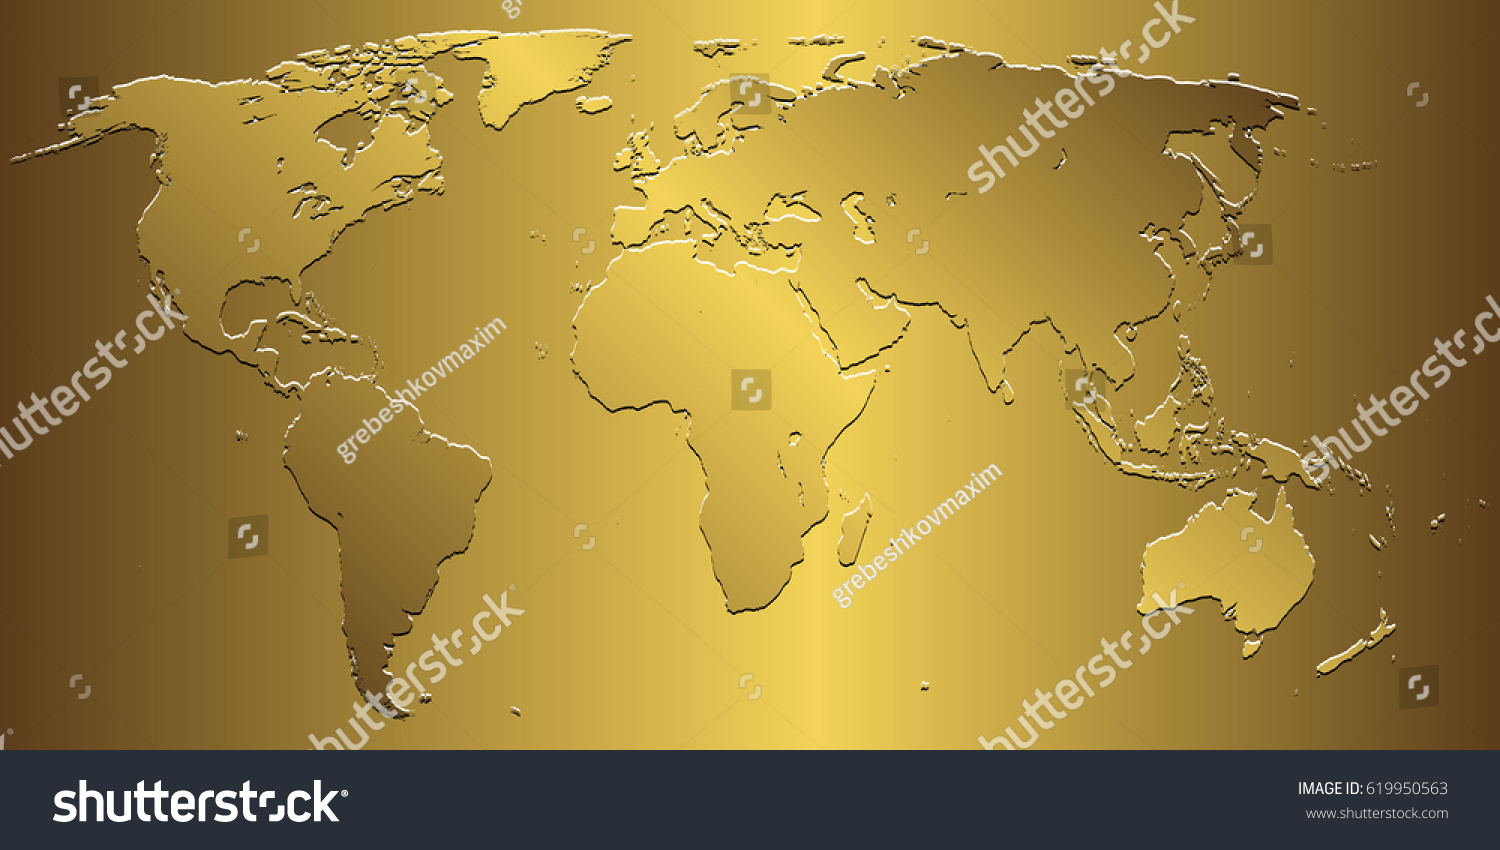 Golden world map on gold background stock photo photo vector golden world map on gold background gumiabroncs Image collections